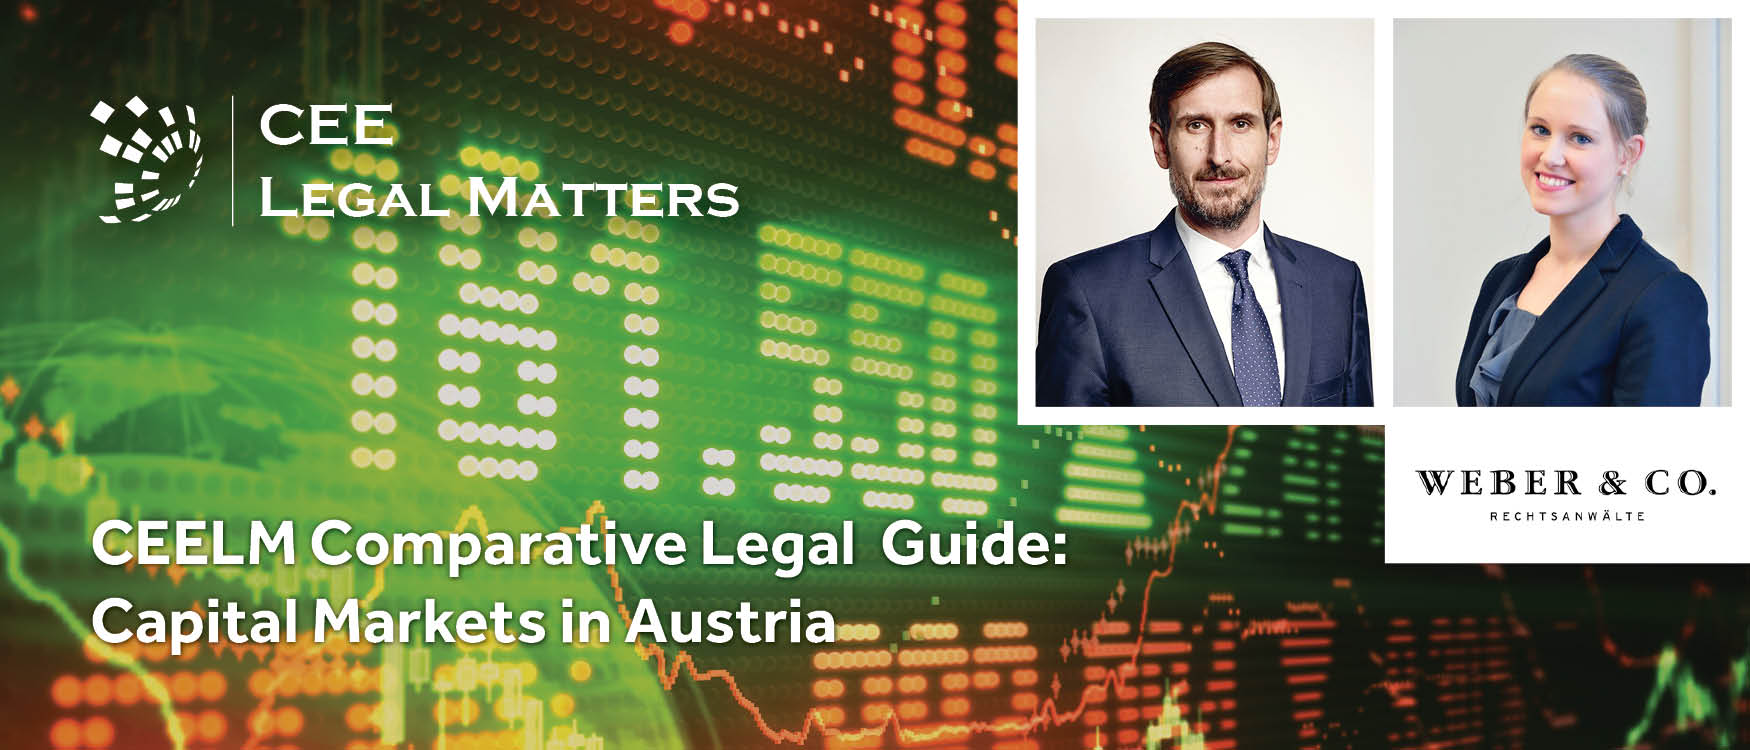 Capital Markets in Austria